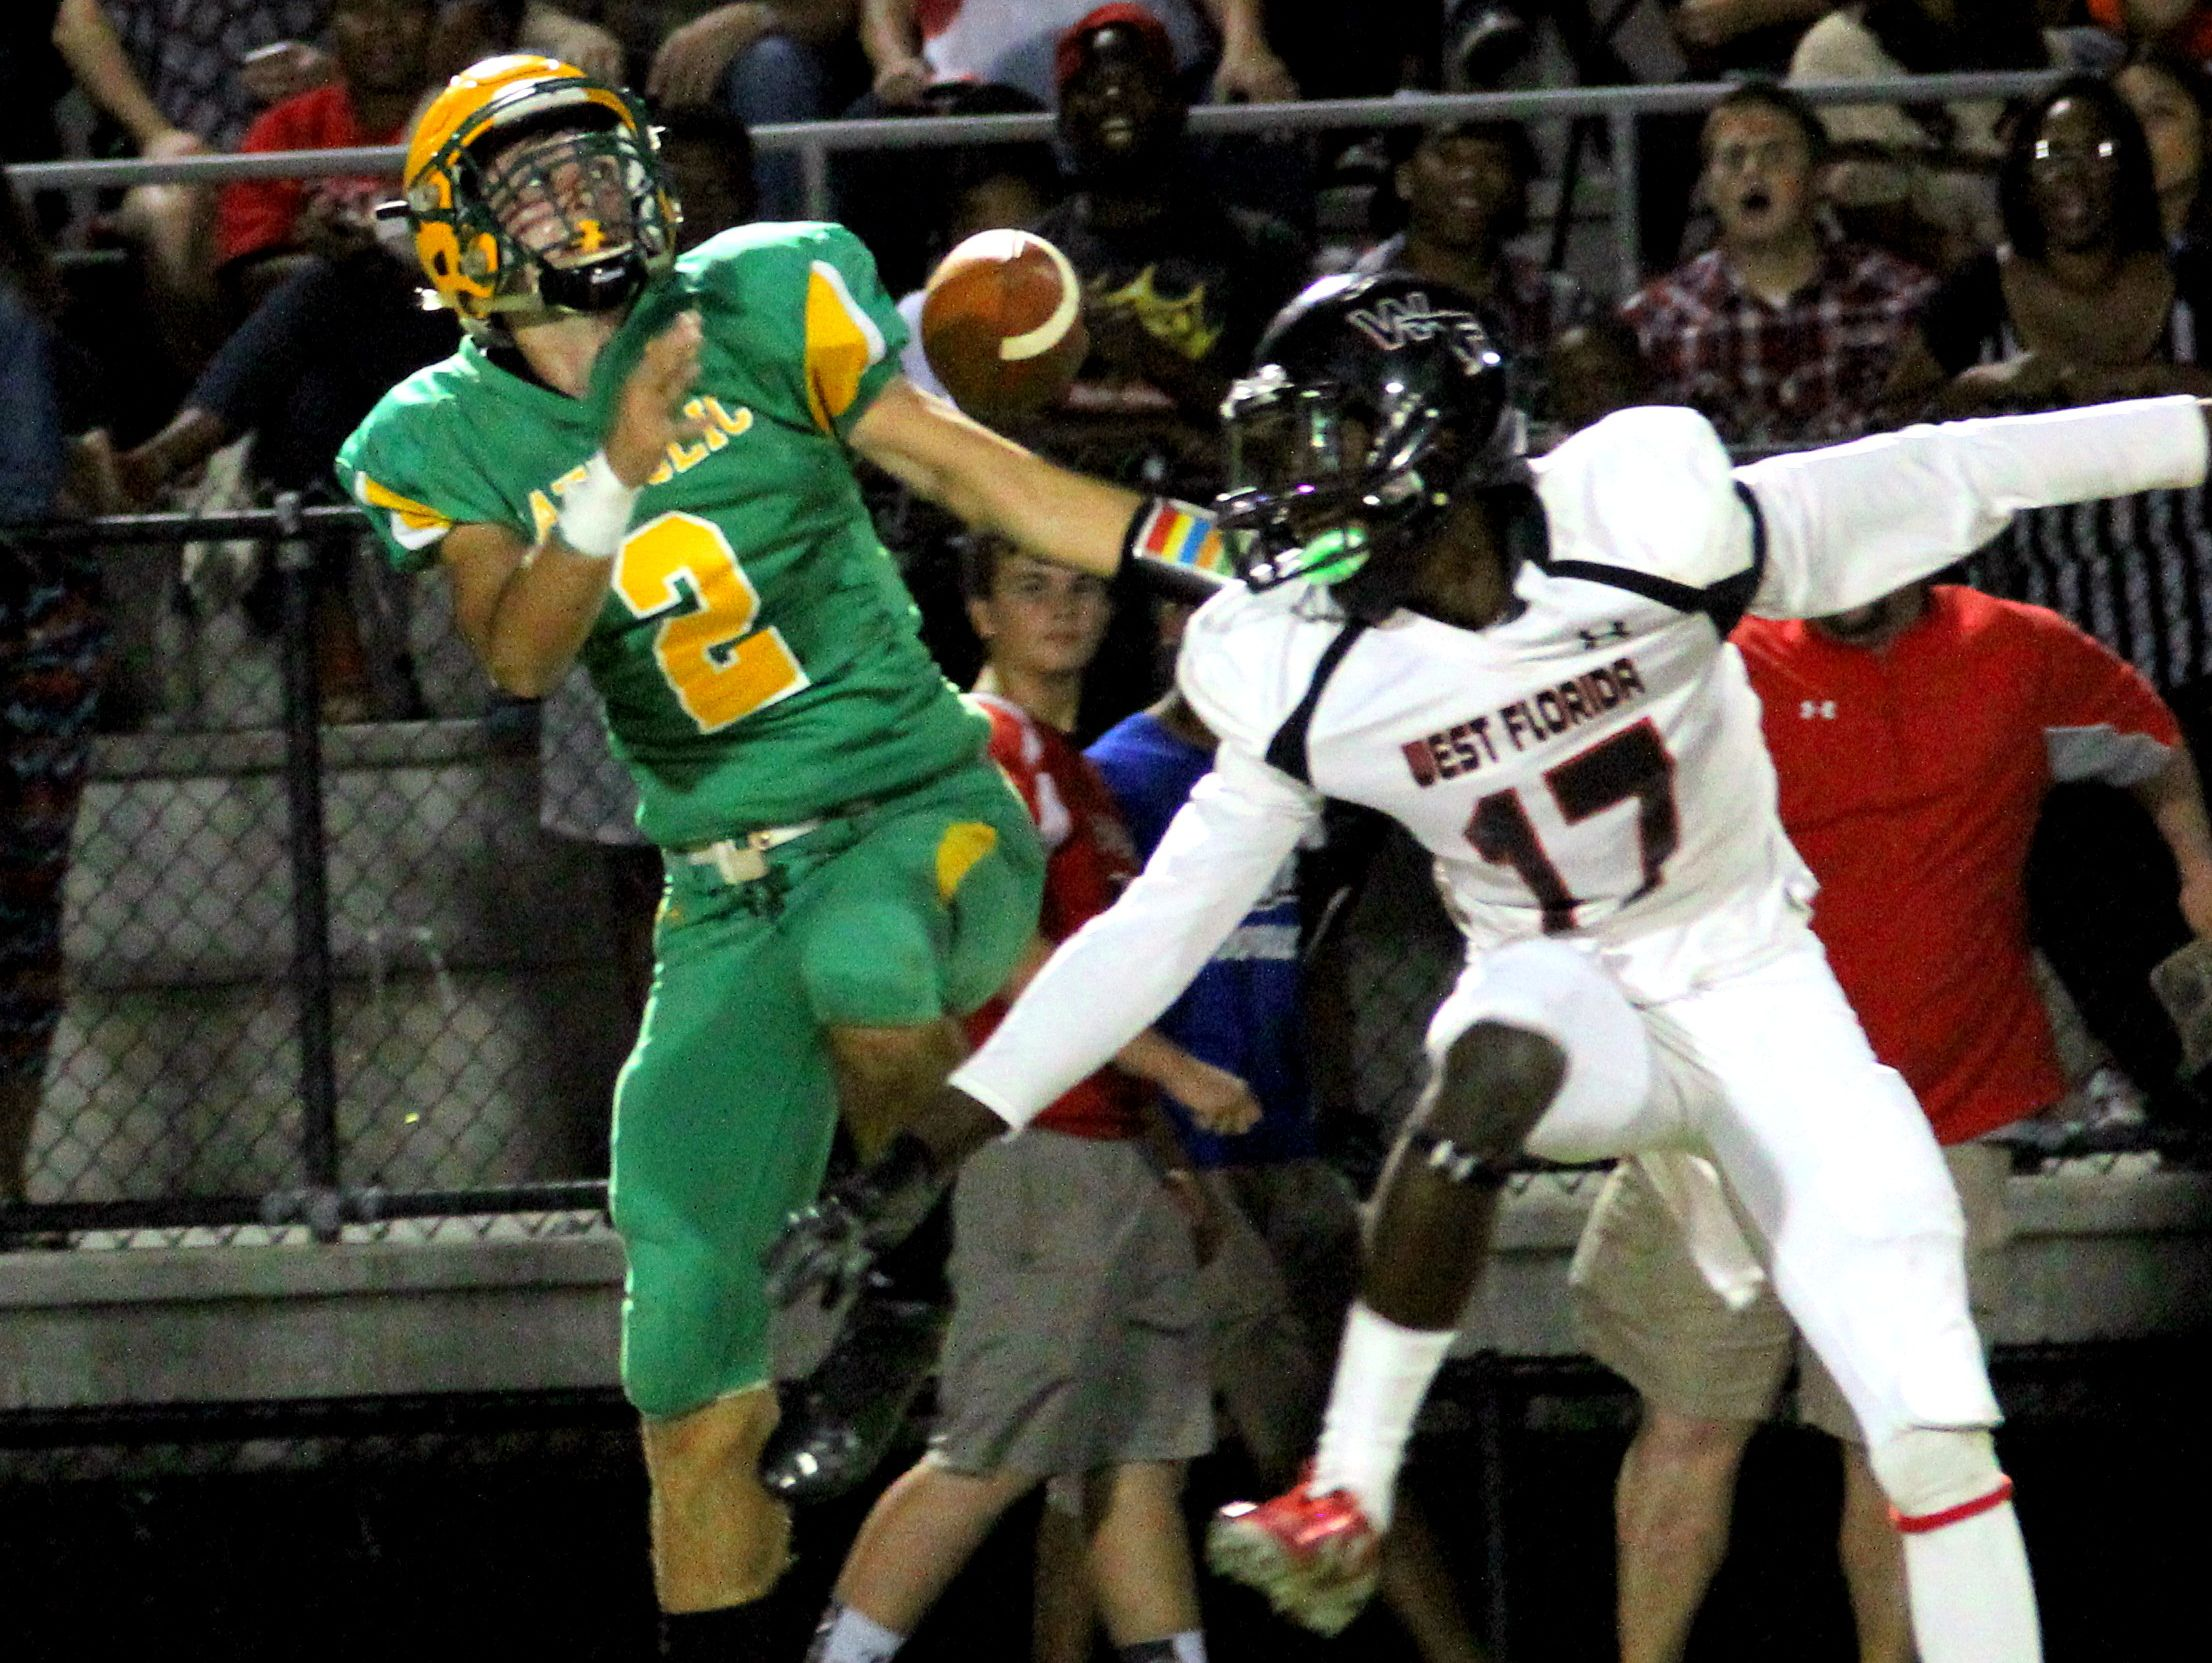 A West Florida player breaks up a pass intended for Catholic's AJ. Yates (2) in the first half.